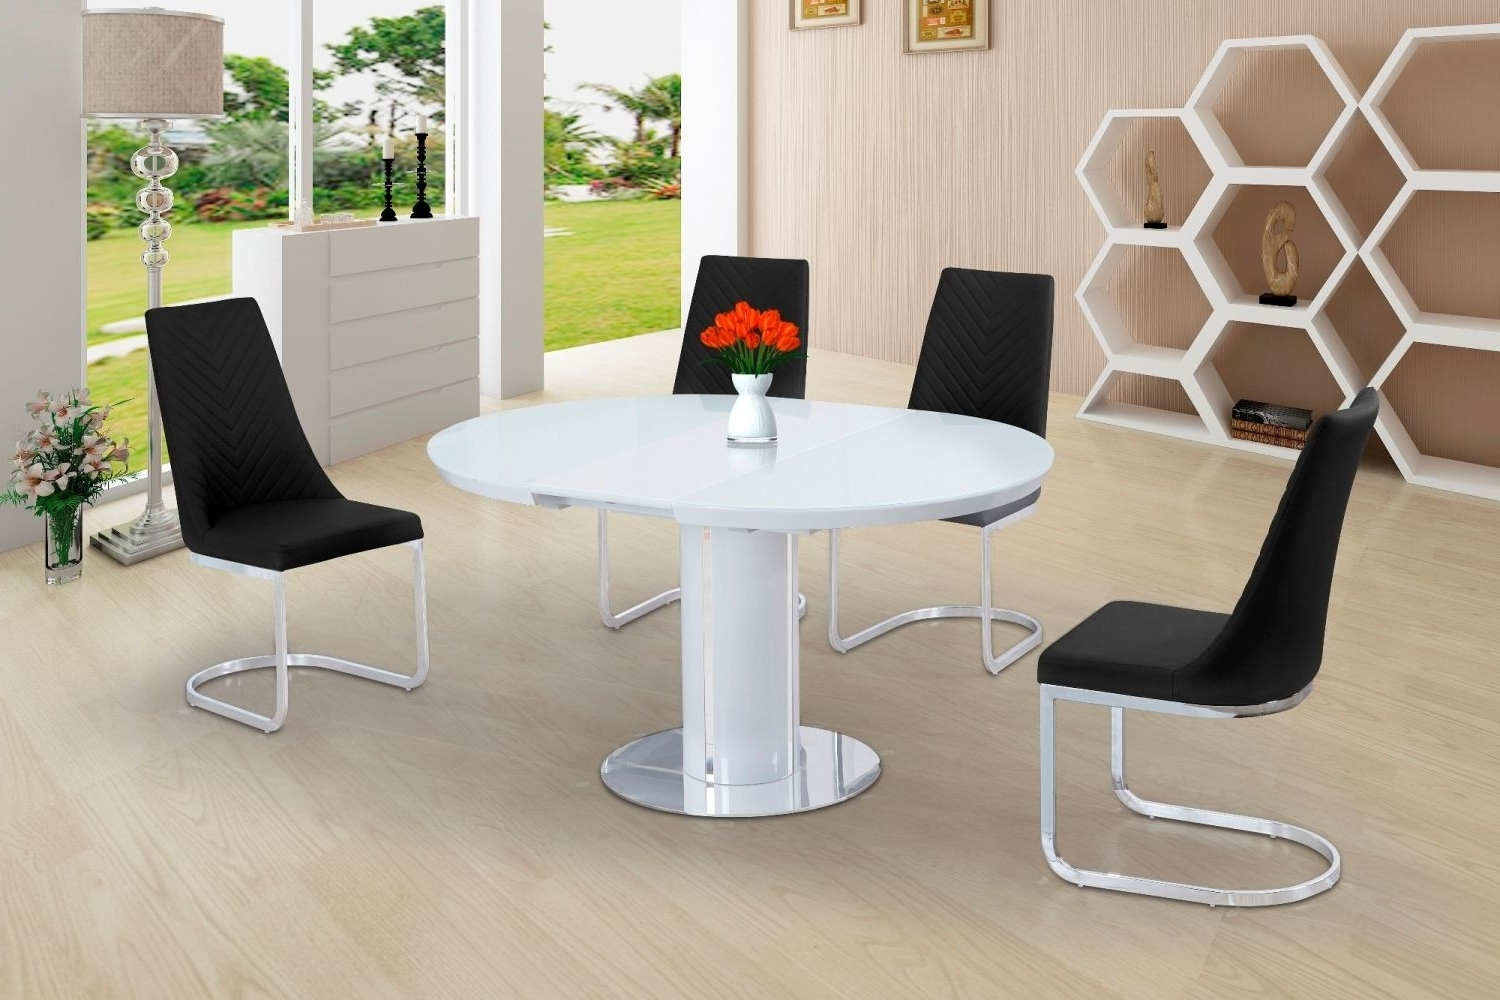 2017 Shiny White Dining Tables Pertaining To Buy Space Saving White Gloss Extending Round Dining Table (View 3 of 25)